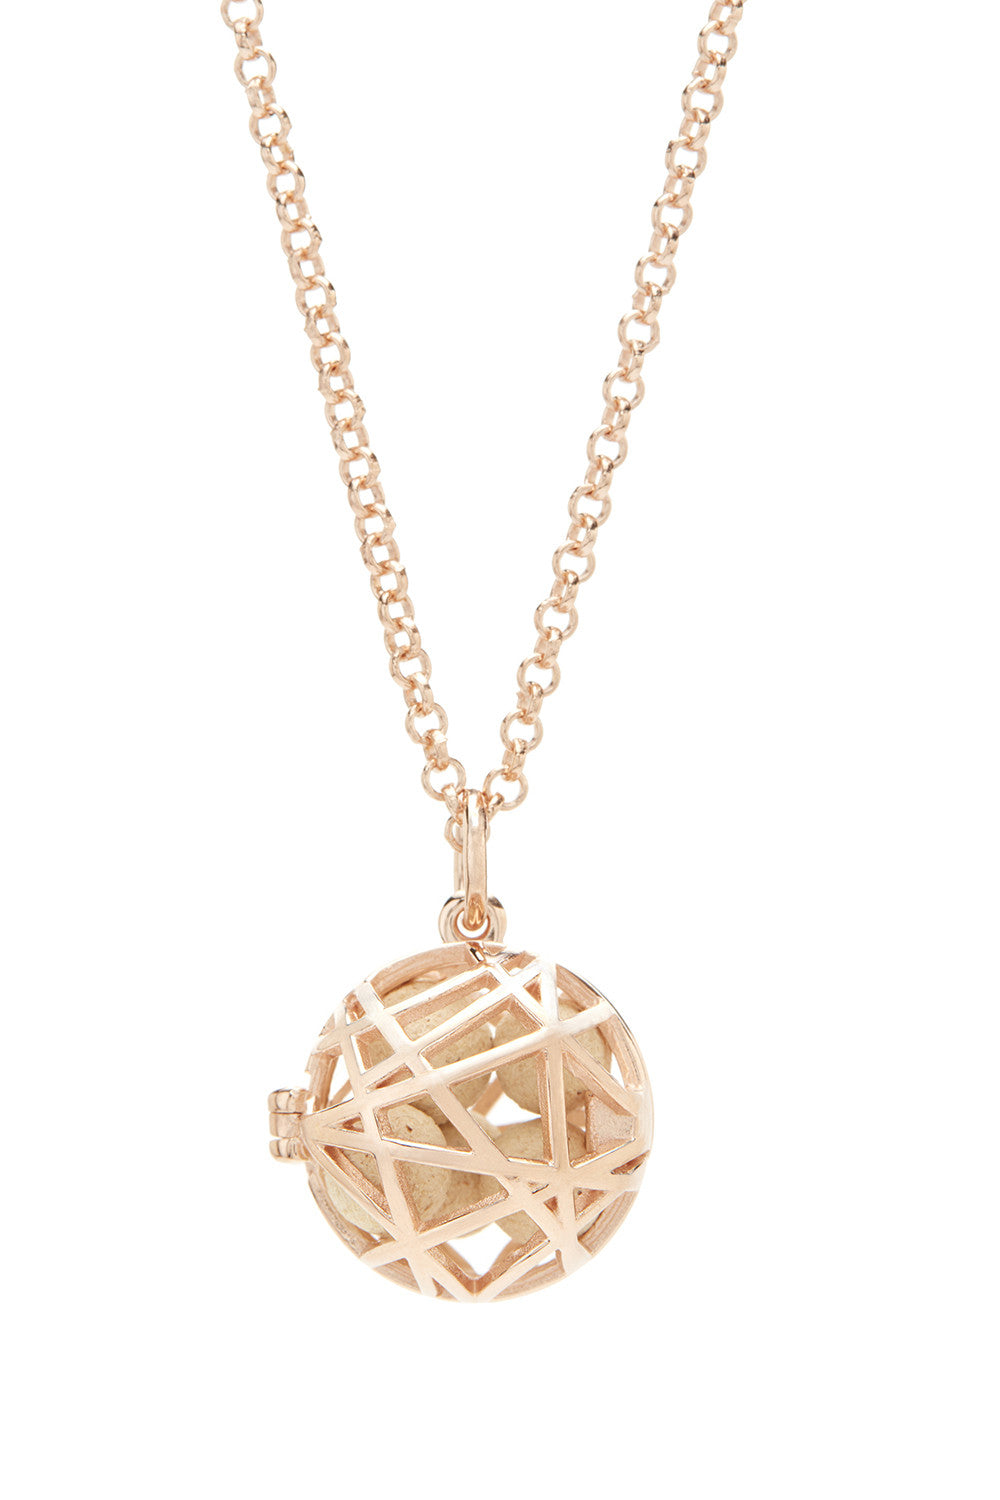 Nest Necklace - Rose Gold